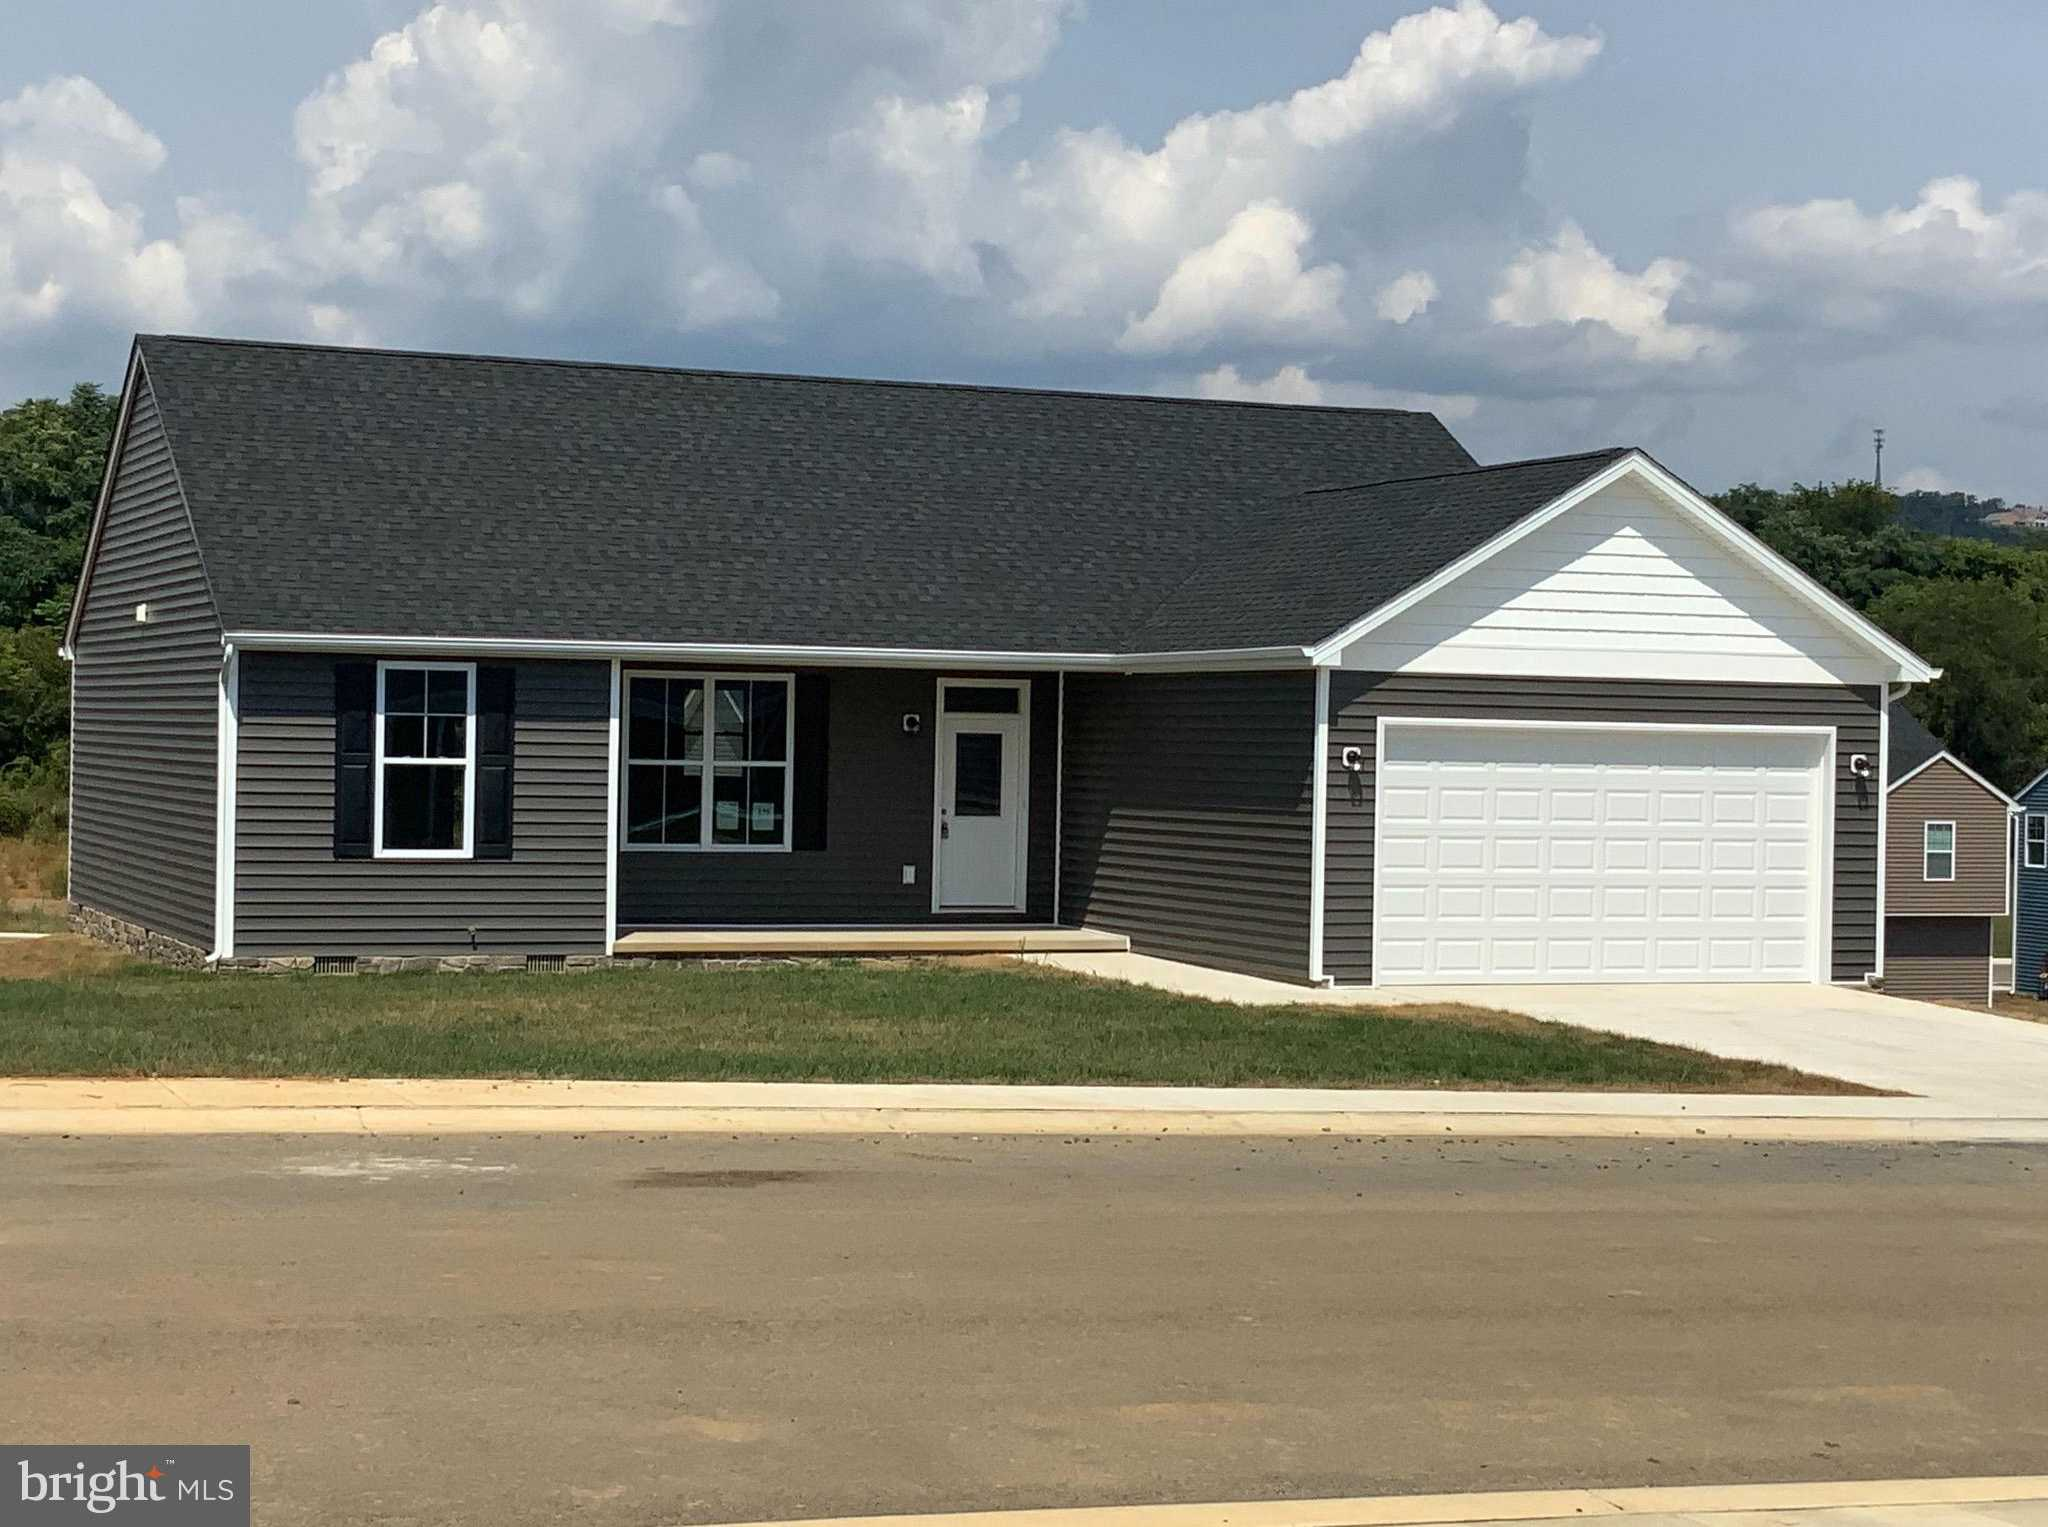 $220,000 - 3Br/2Ba -  for Sale in Red Hill, Martinsburg